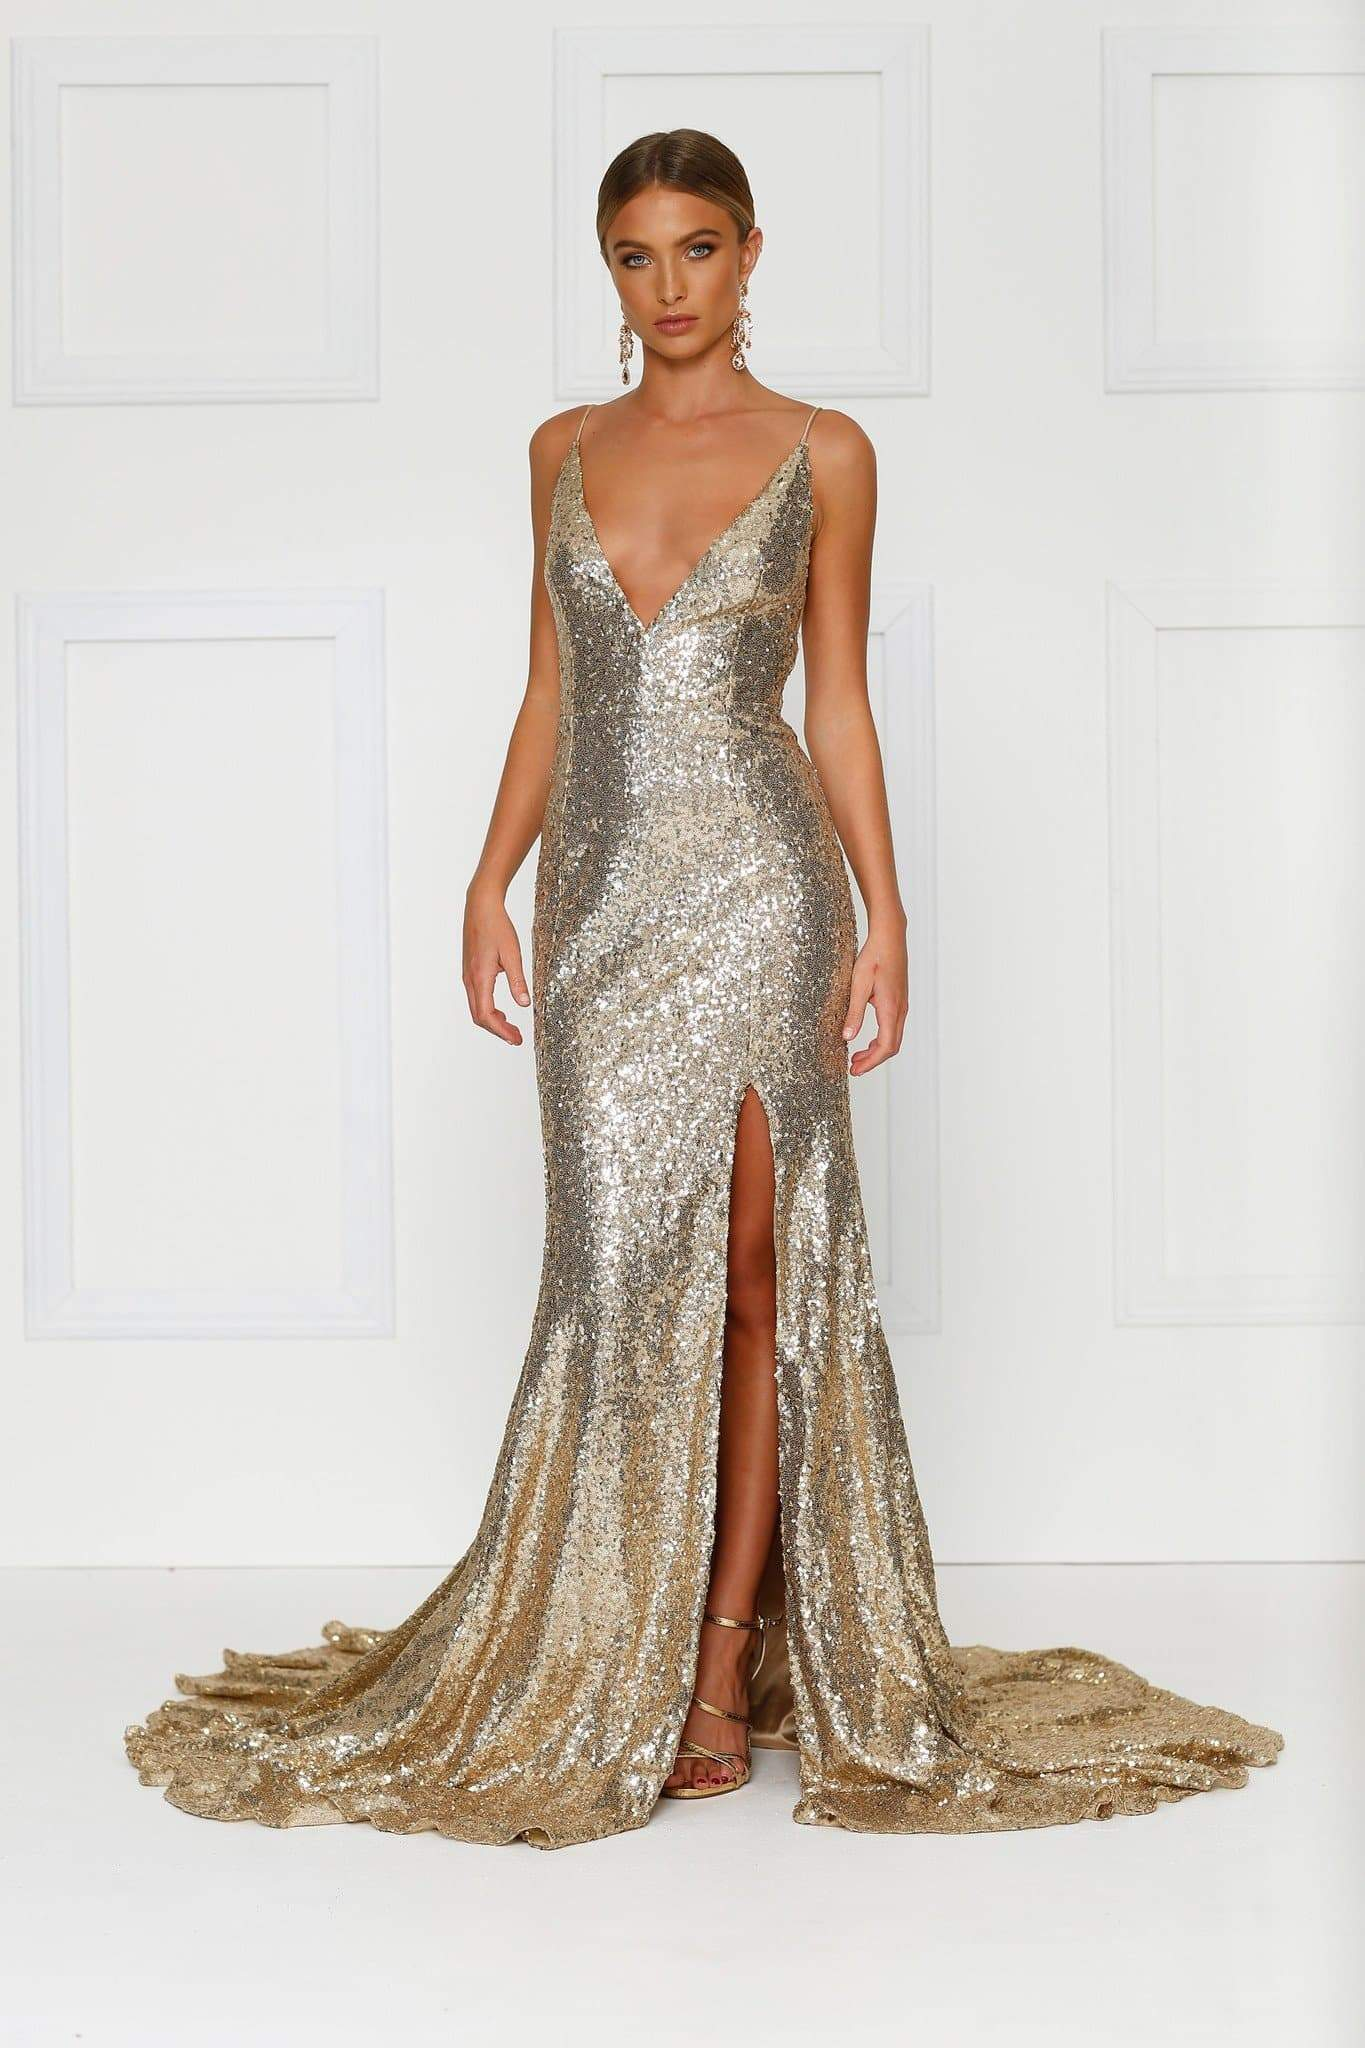 Armanah Sequin Mermaid Gown - Gold Prom Dress with Side Split